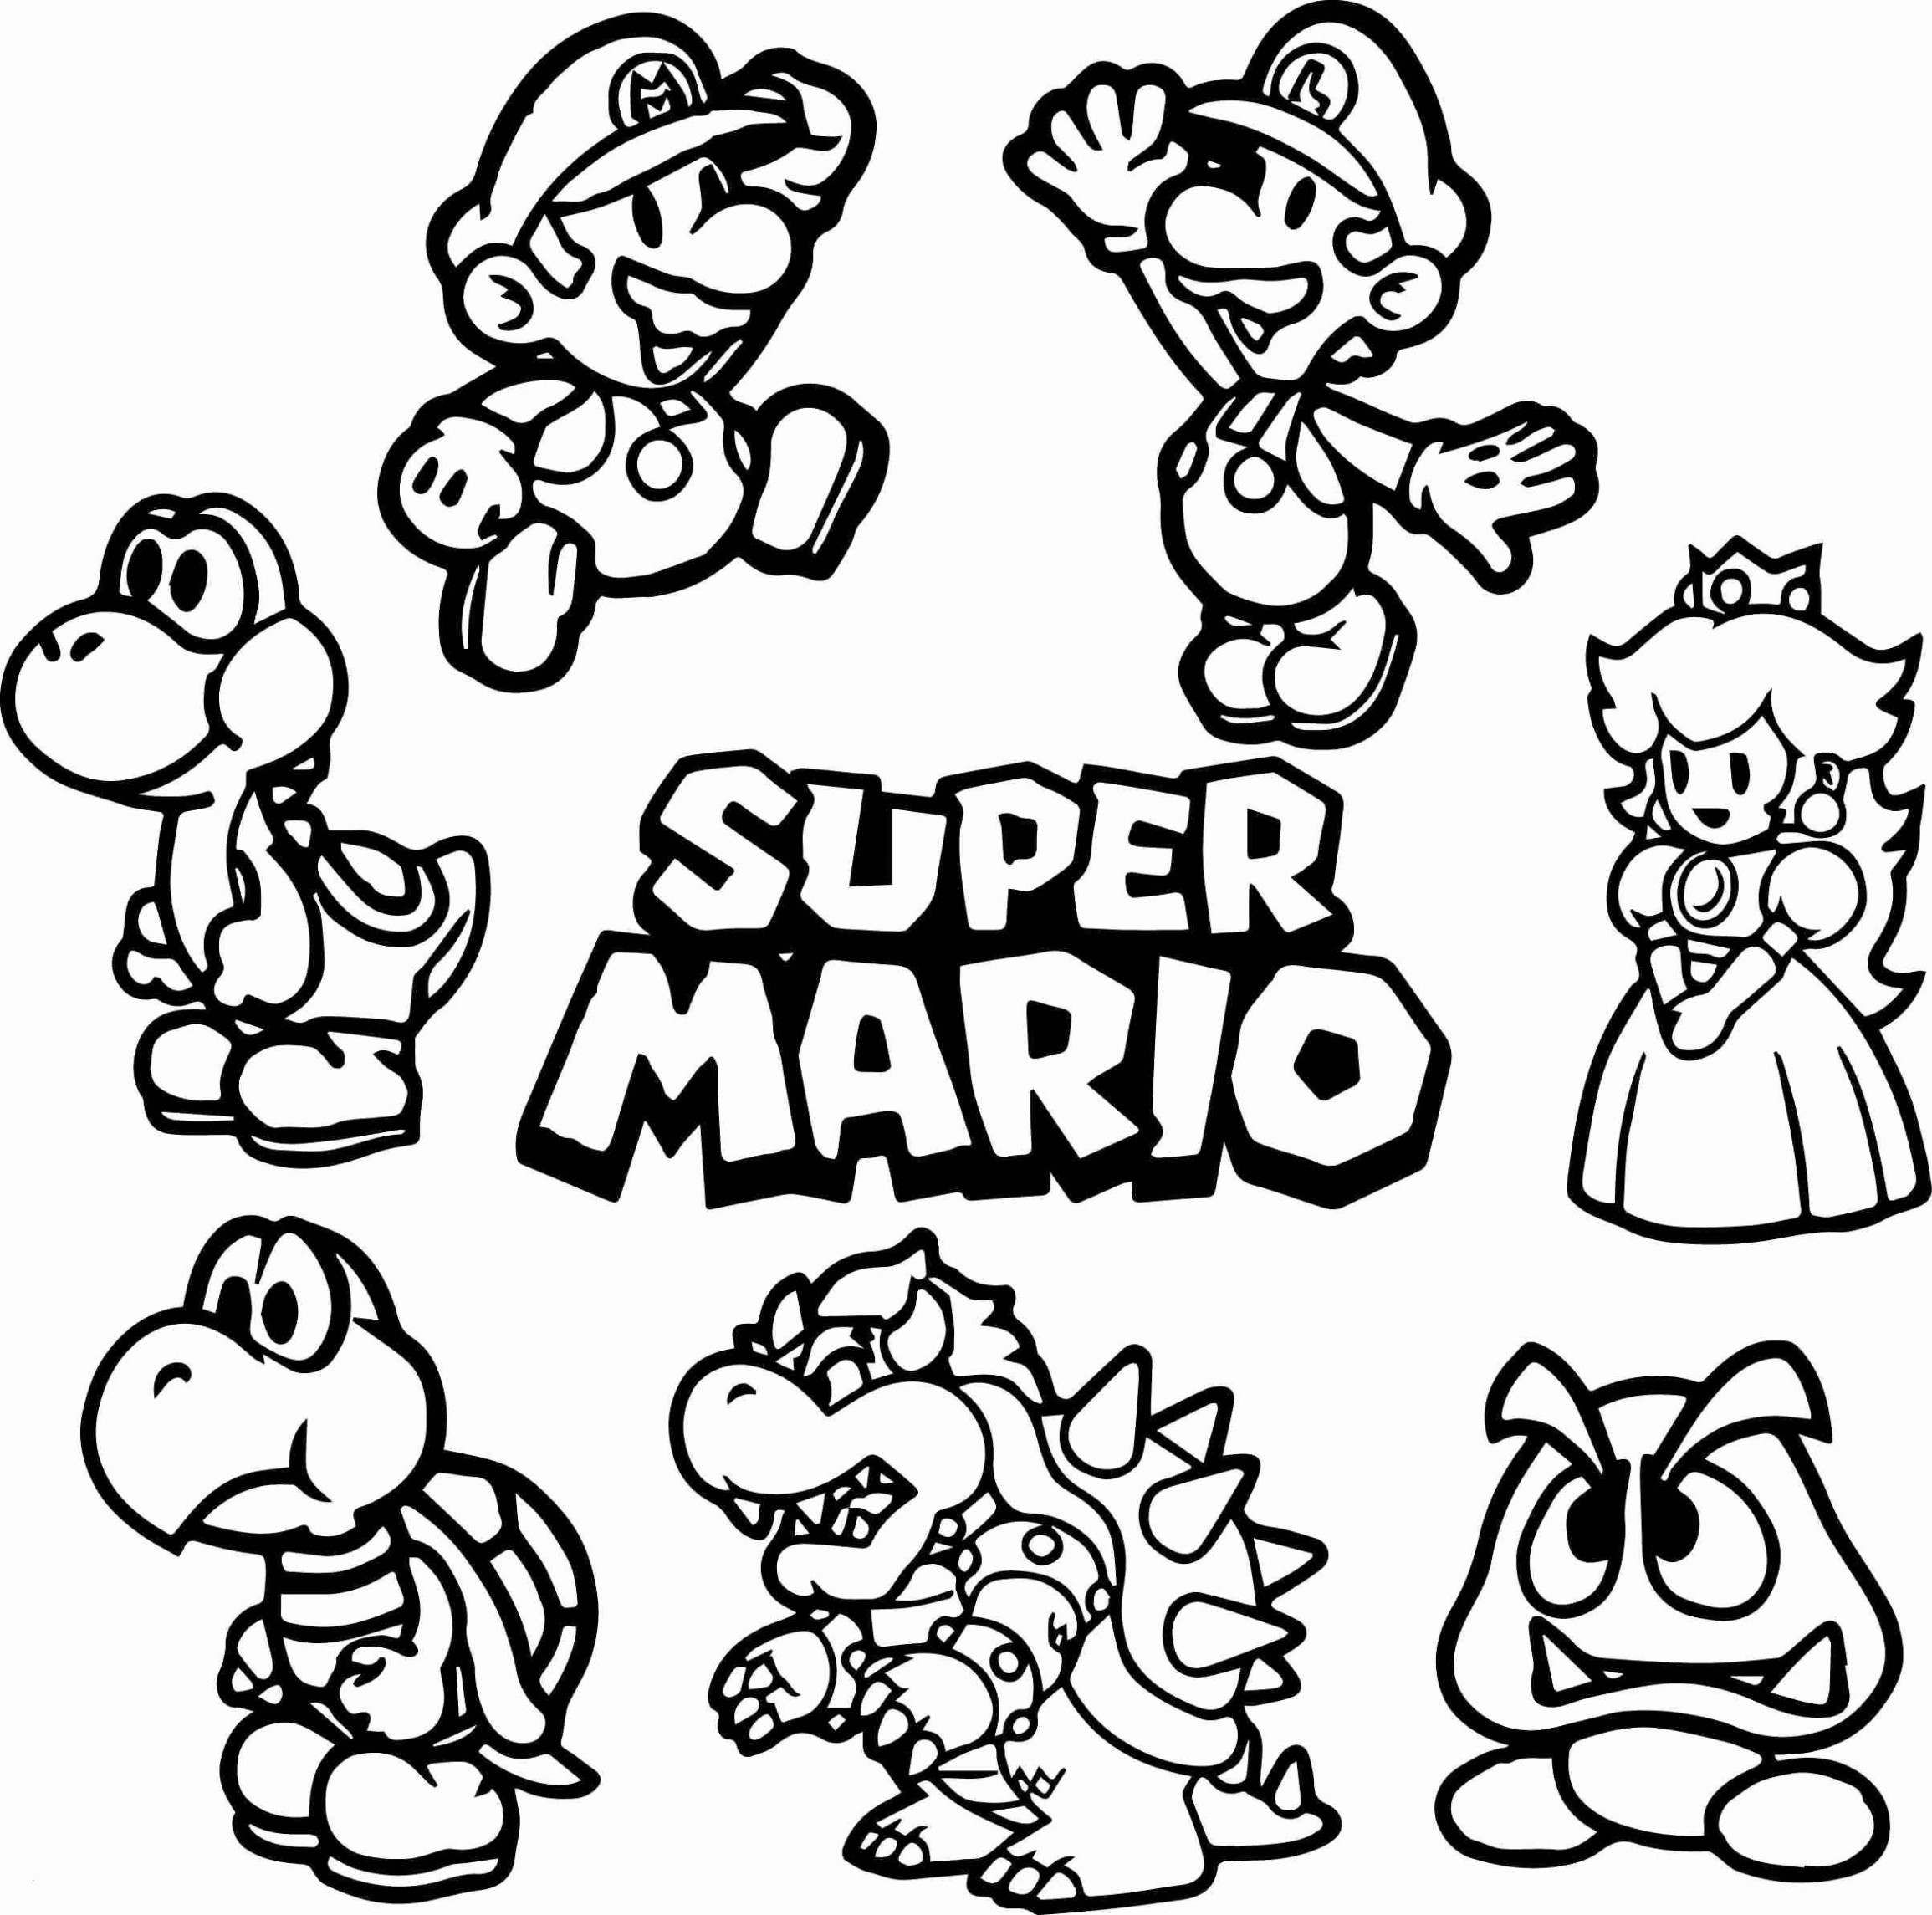 Pin By David Solorzano On Draw | Mario Coloring Pages, Super